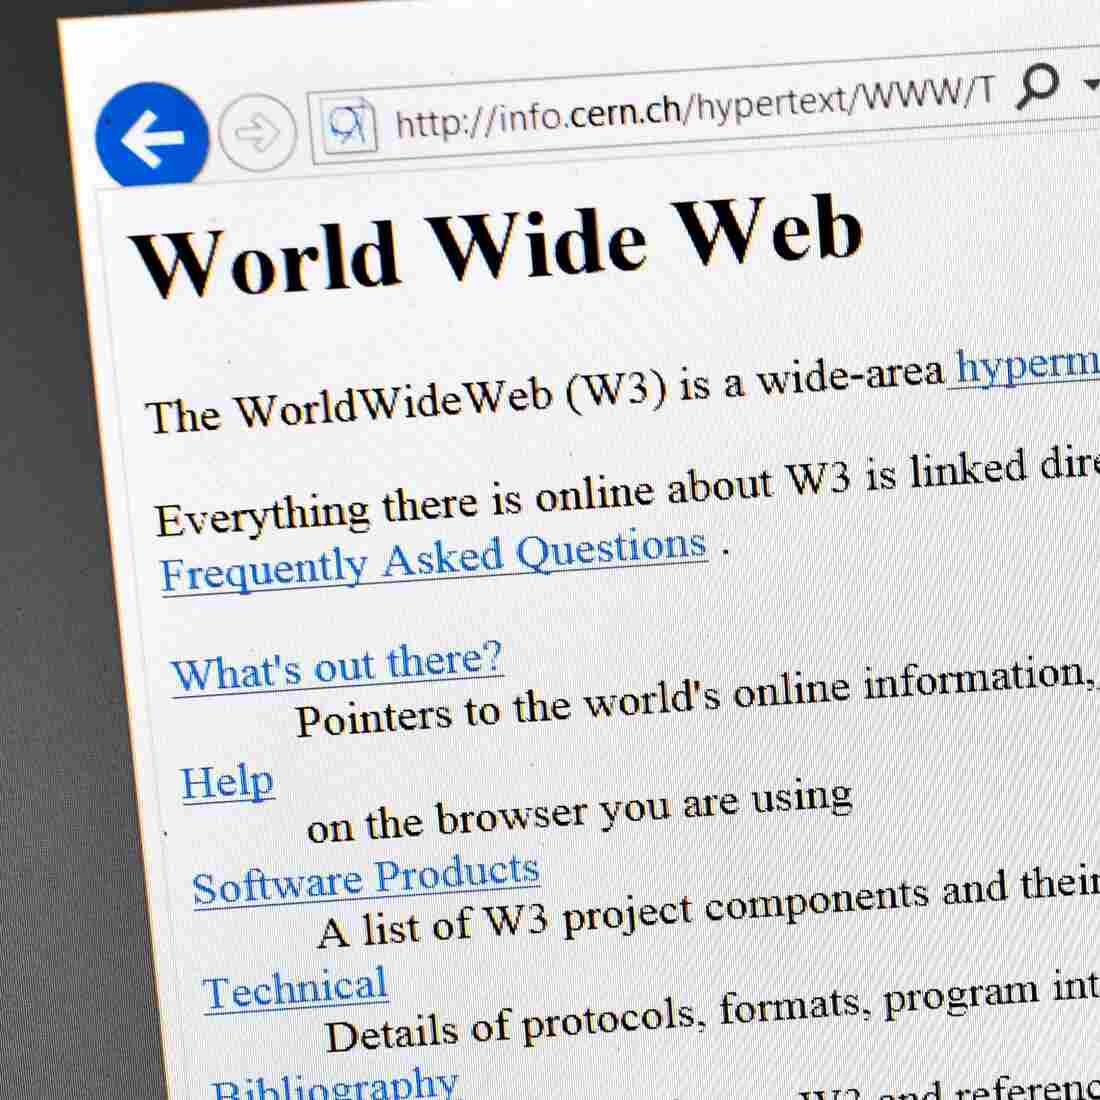 The Web At 25: Hugely Popular, And Viewed As A Positive Force